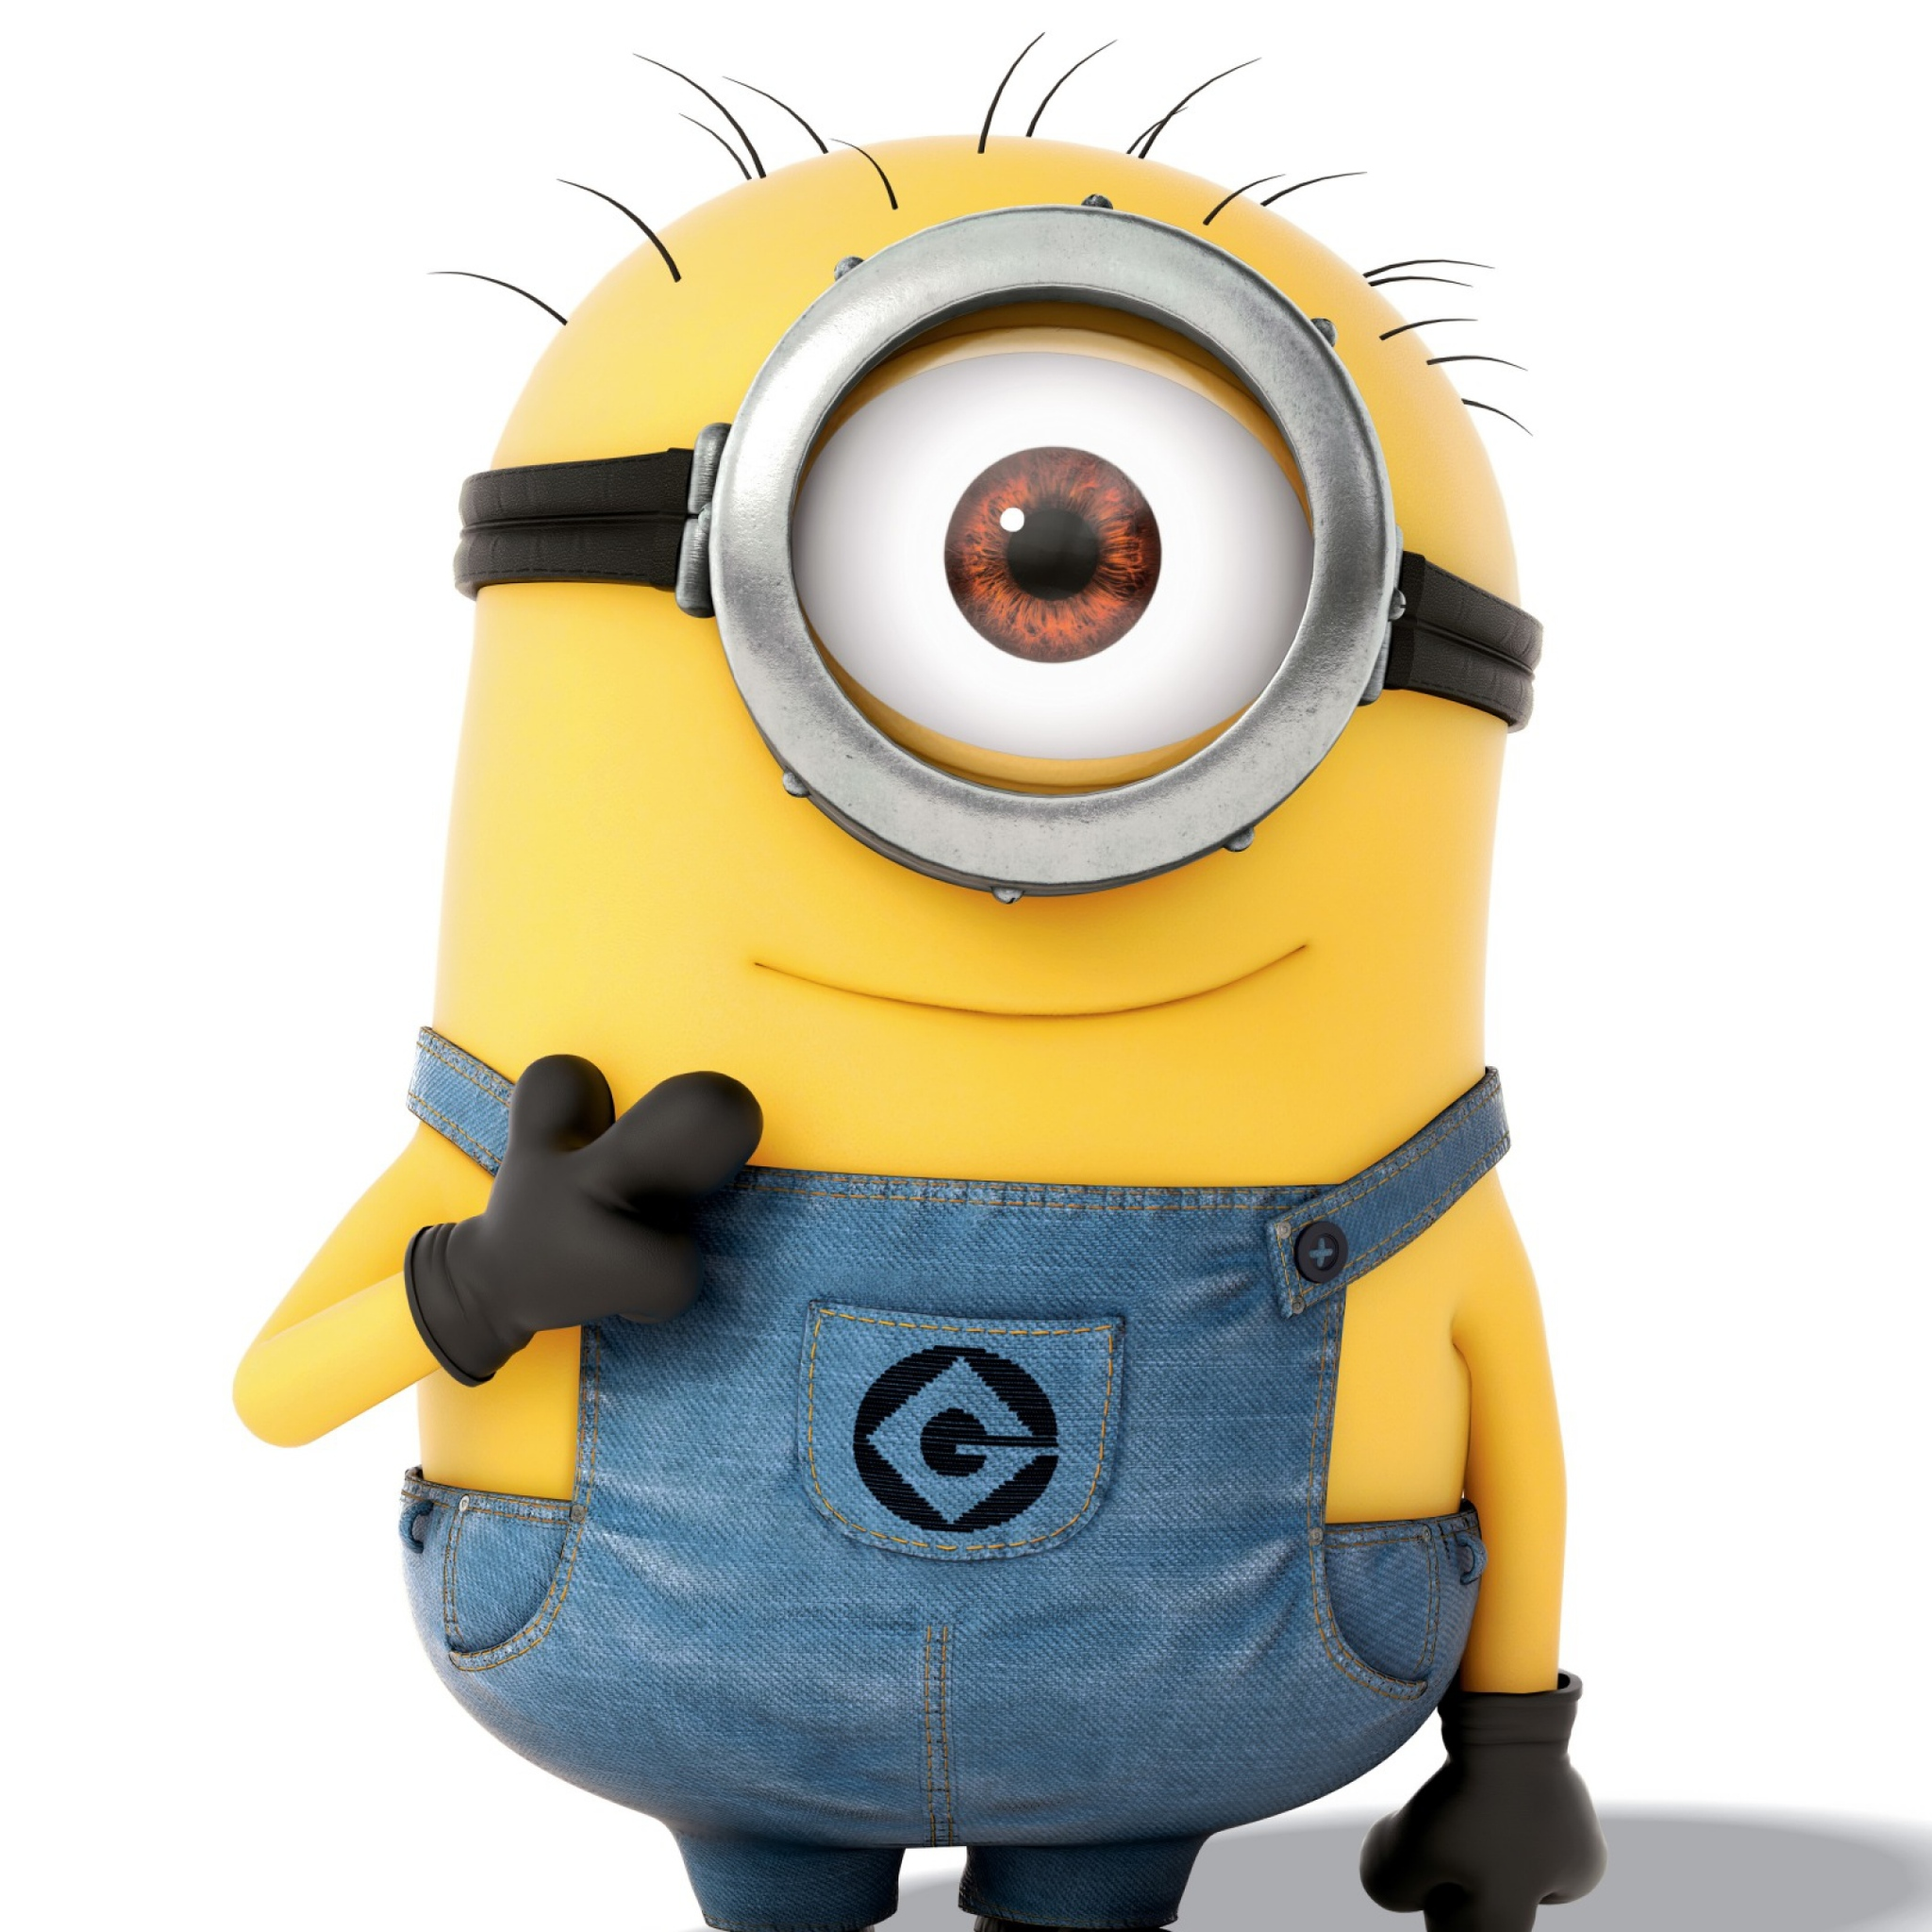 2048x2048 minions ipad air hd 4k wallpapers, images, backgrounds